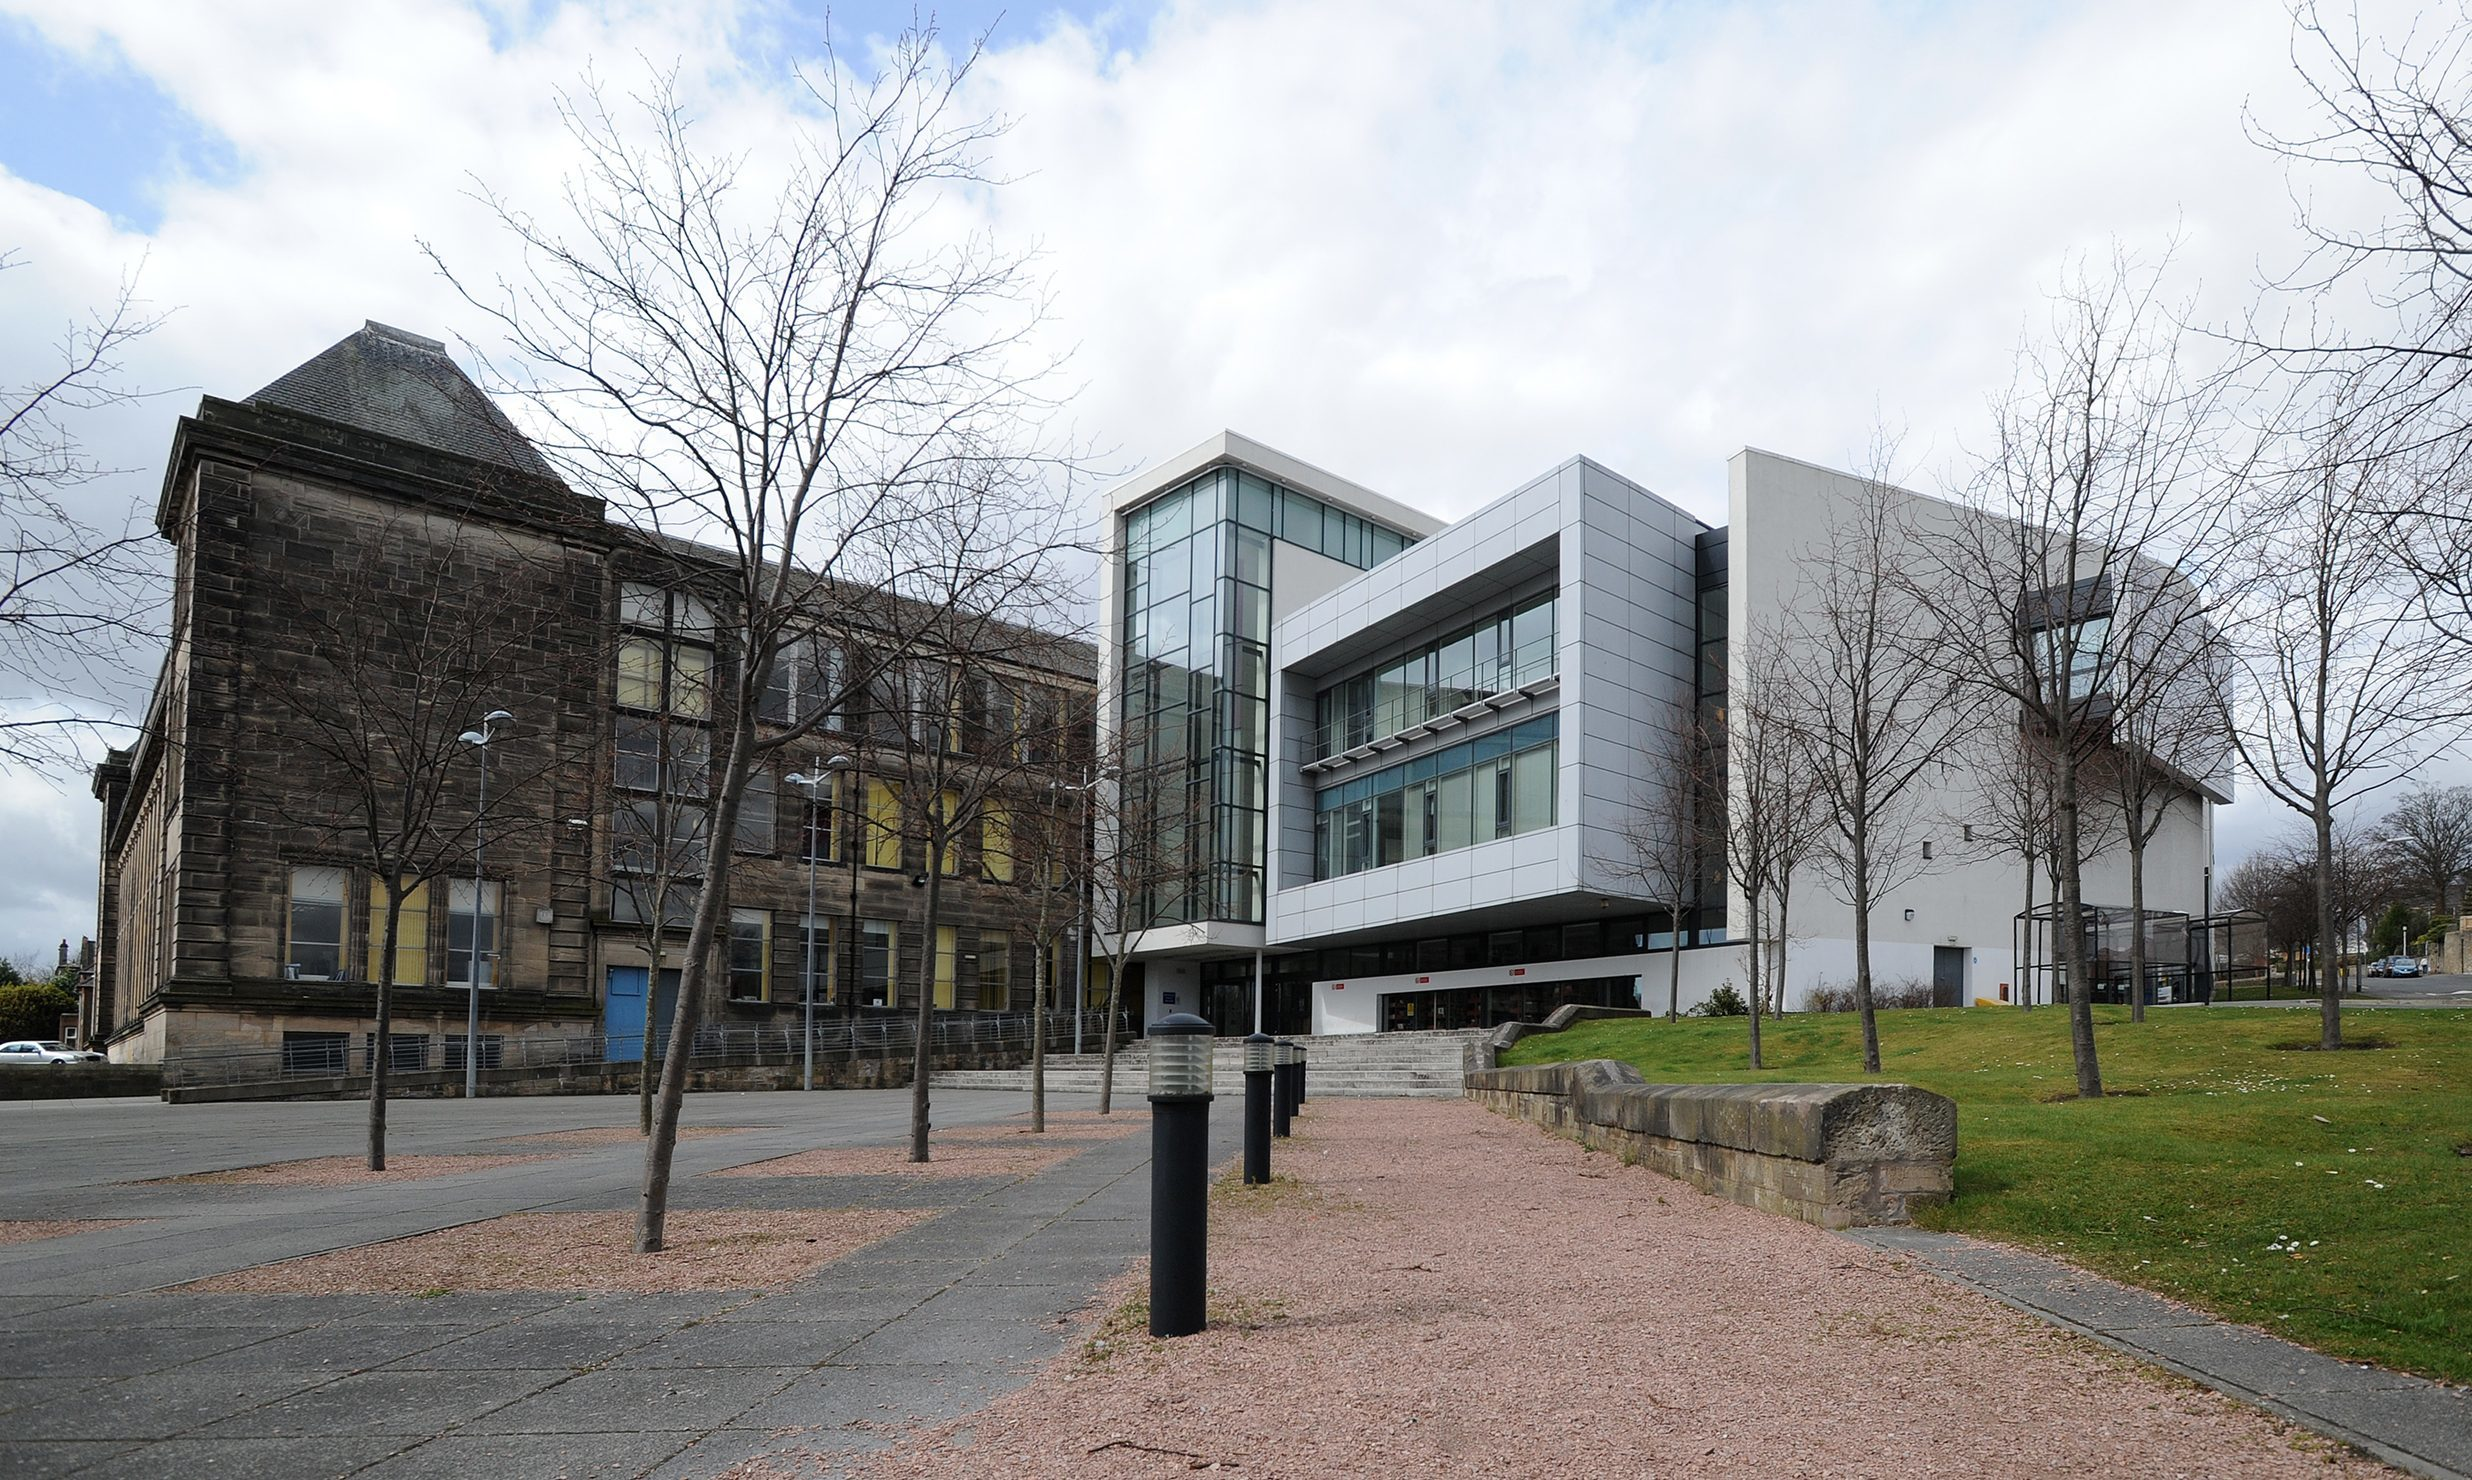 Fife College's St Brycedale campus in Kirkcaldy